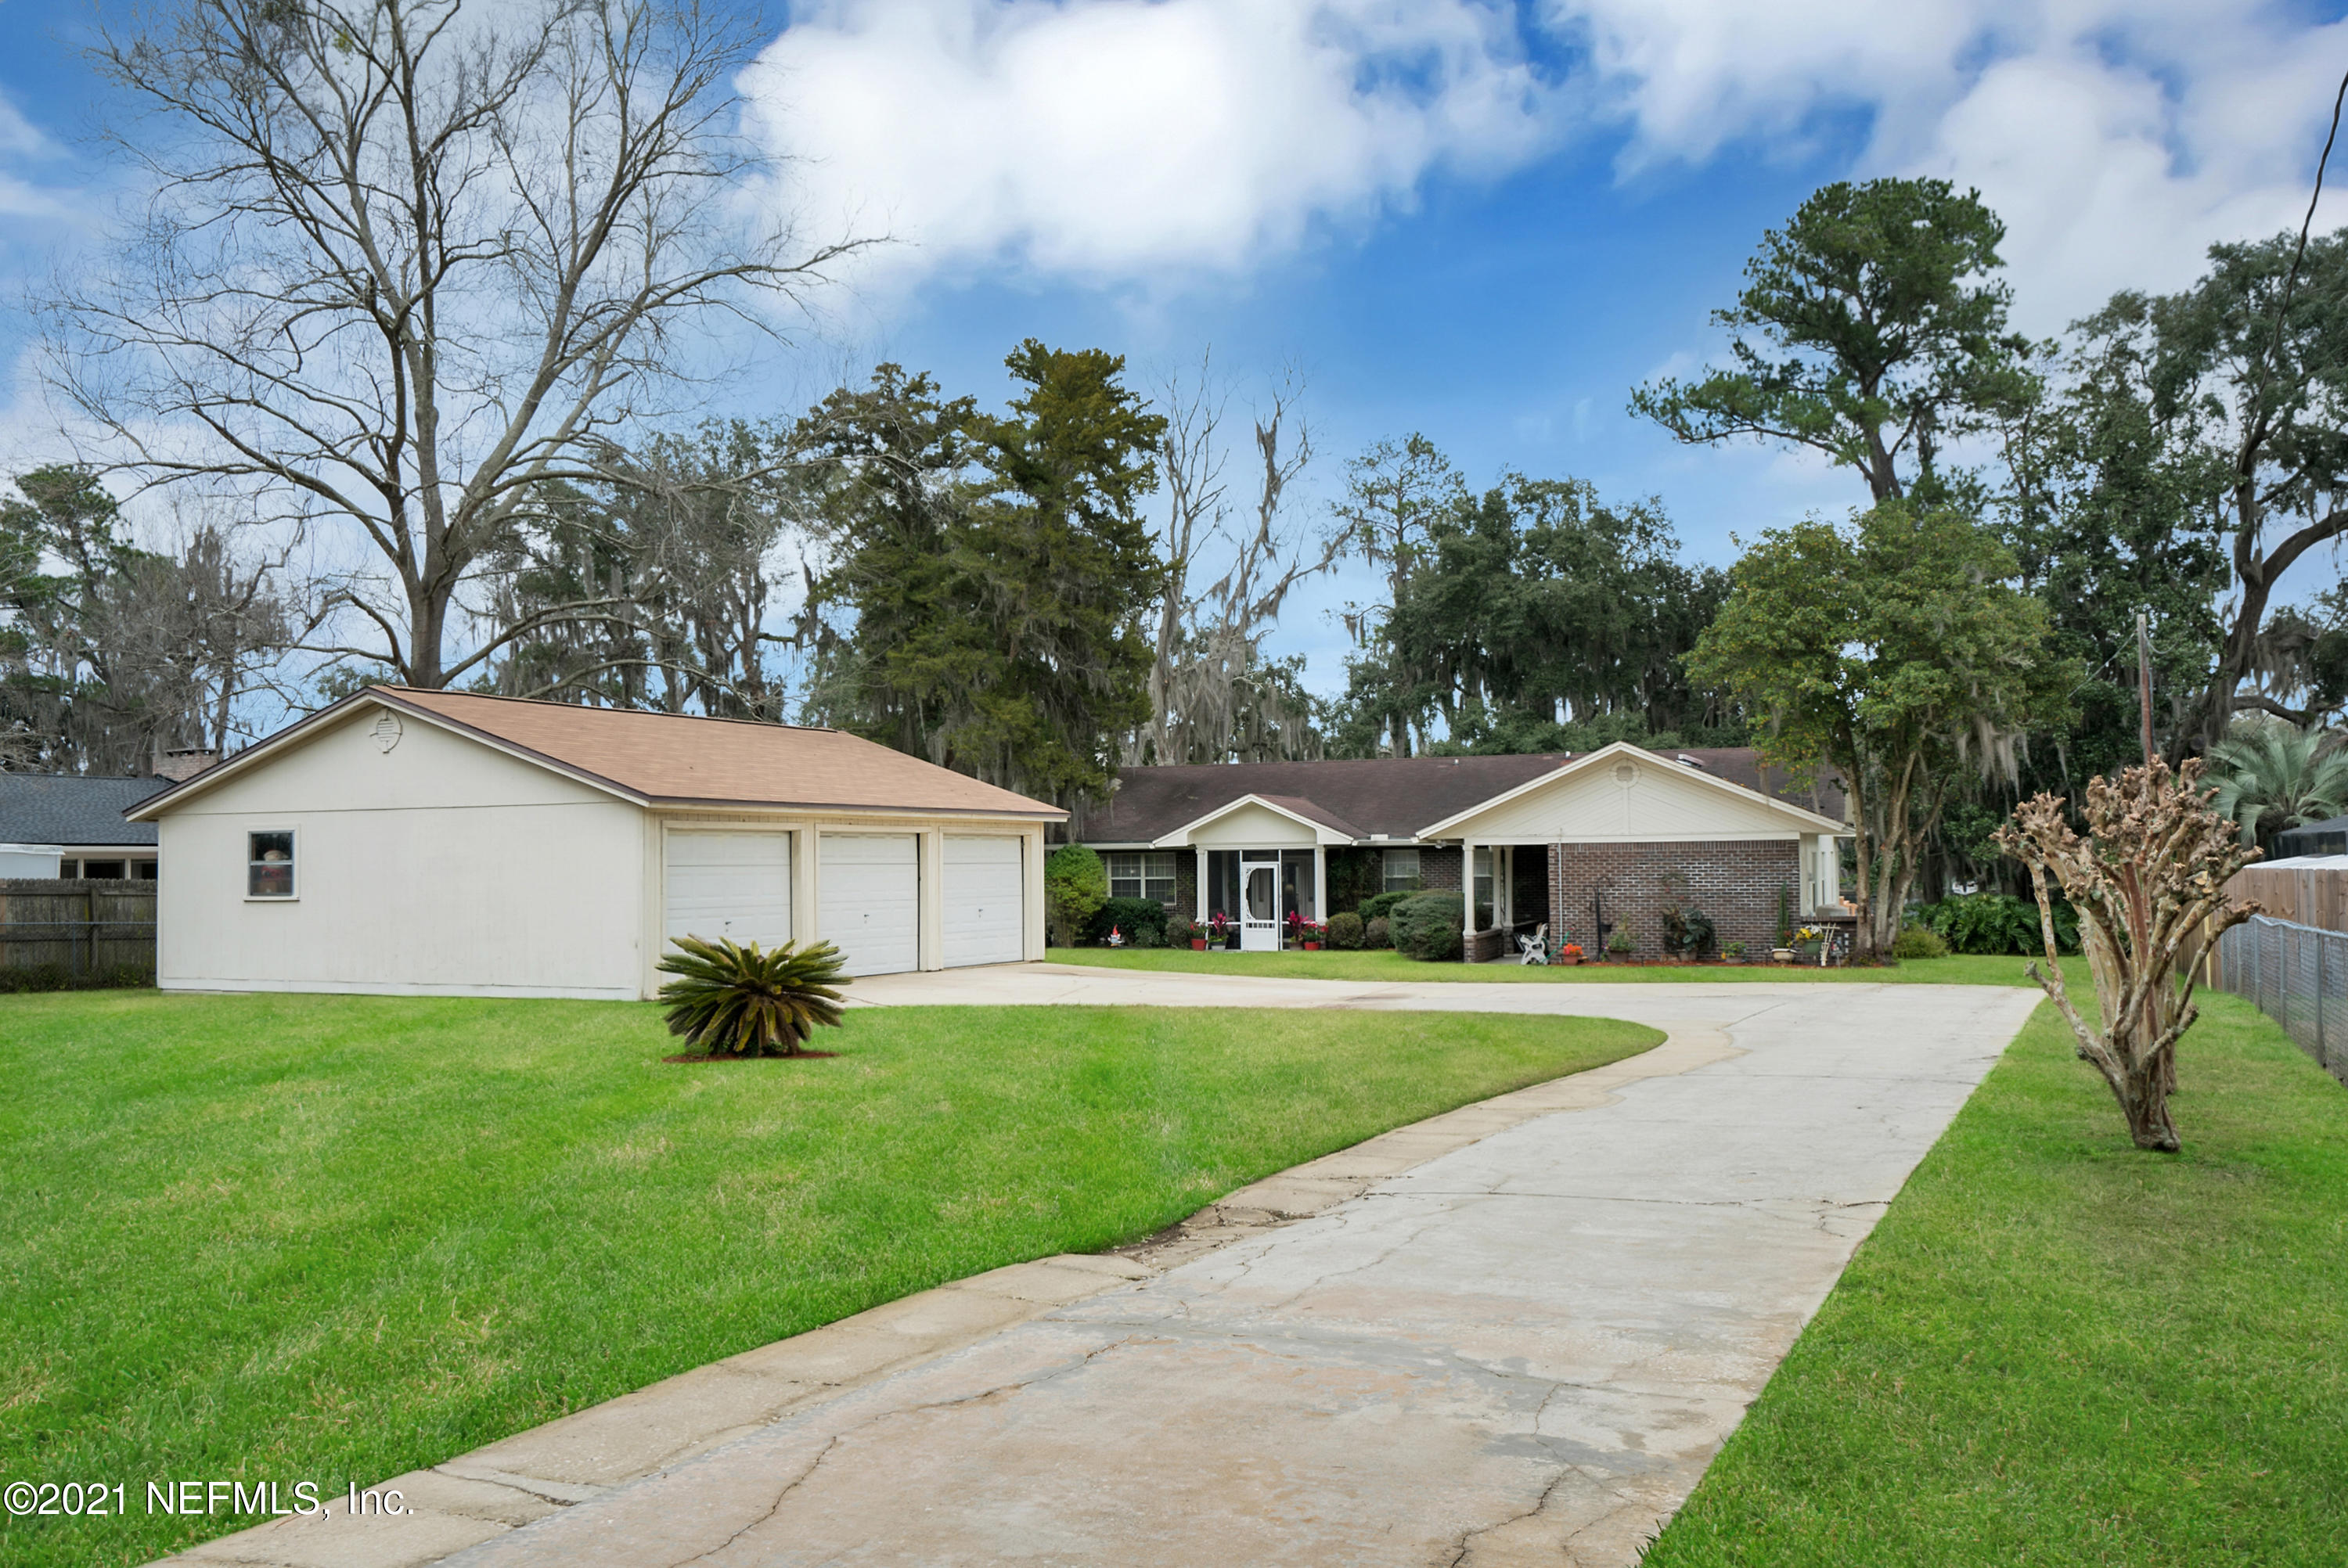 32 HARMONY HALL, MIDDLEBURG, FLORIDA 32068, 3 Bedrooms Bedrooms, ,3 BathroomsBathrooms,Residential,For sale,HARMONY HALL,1095518